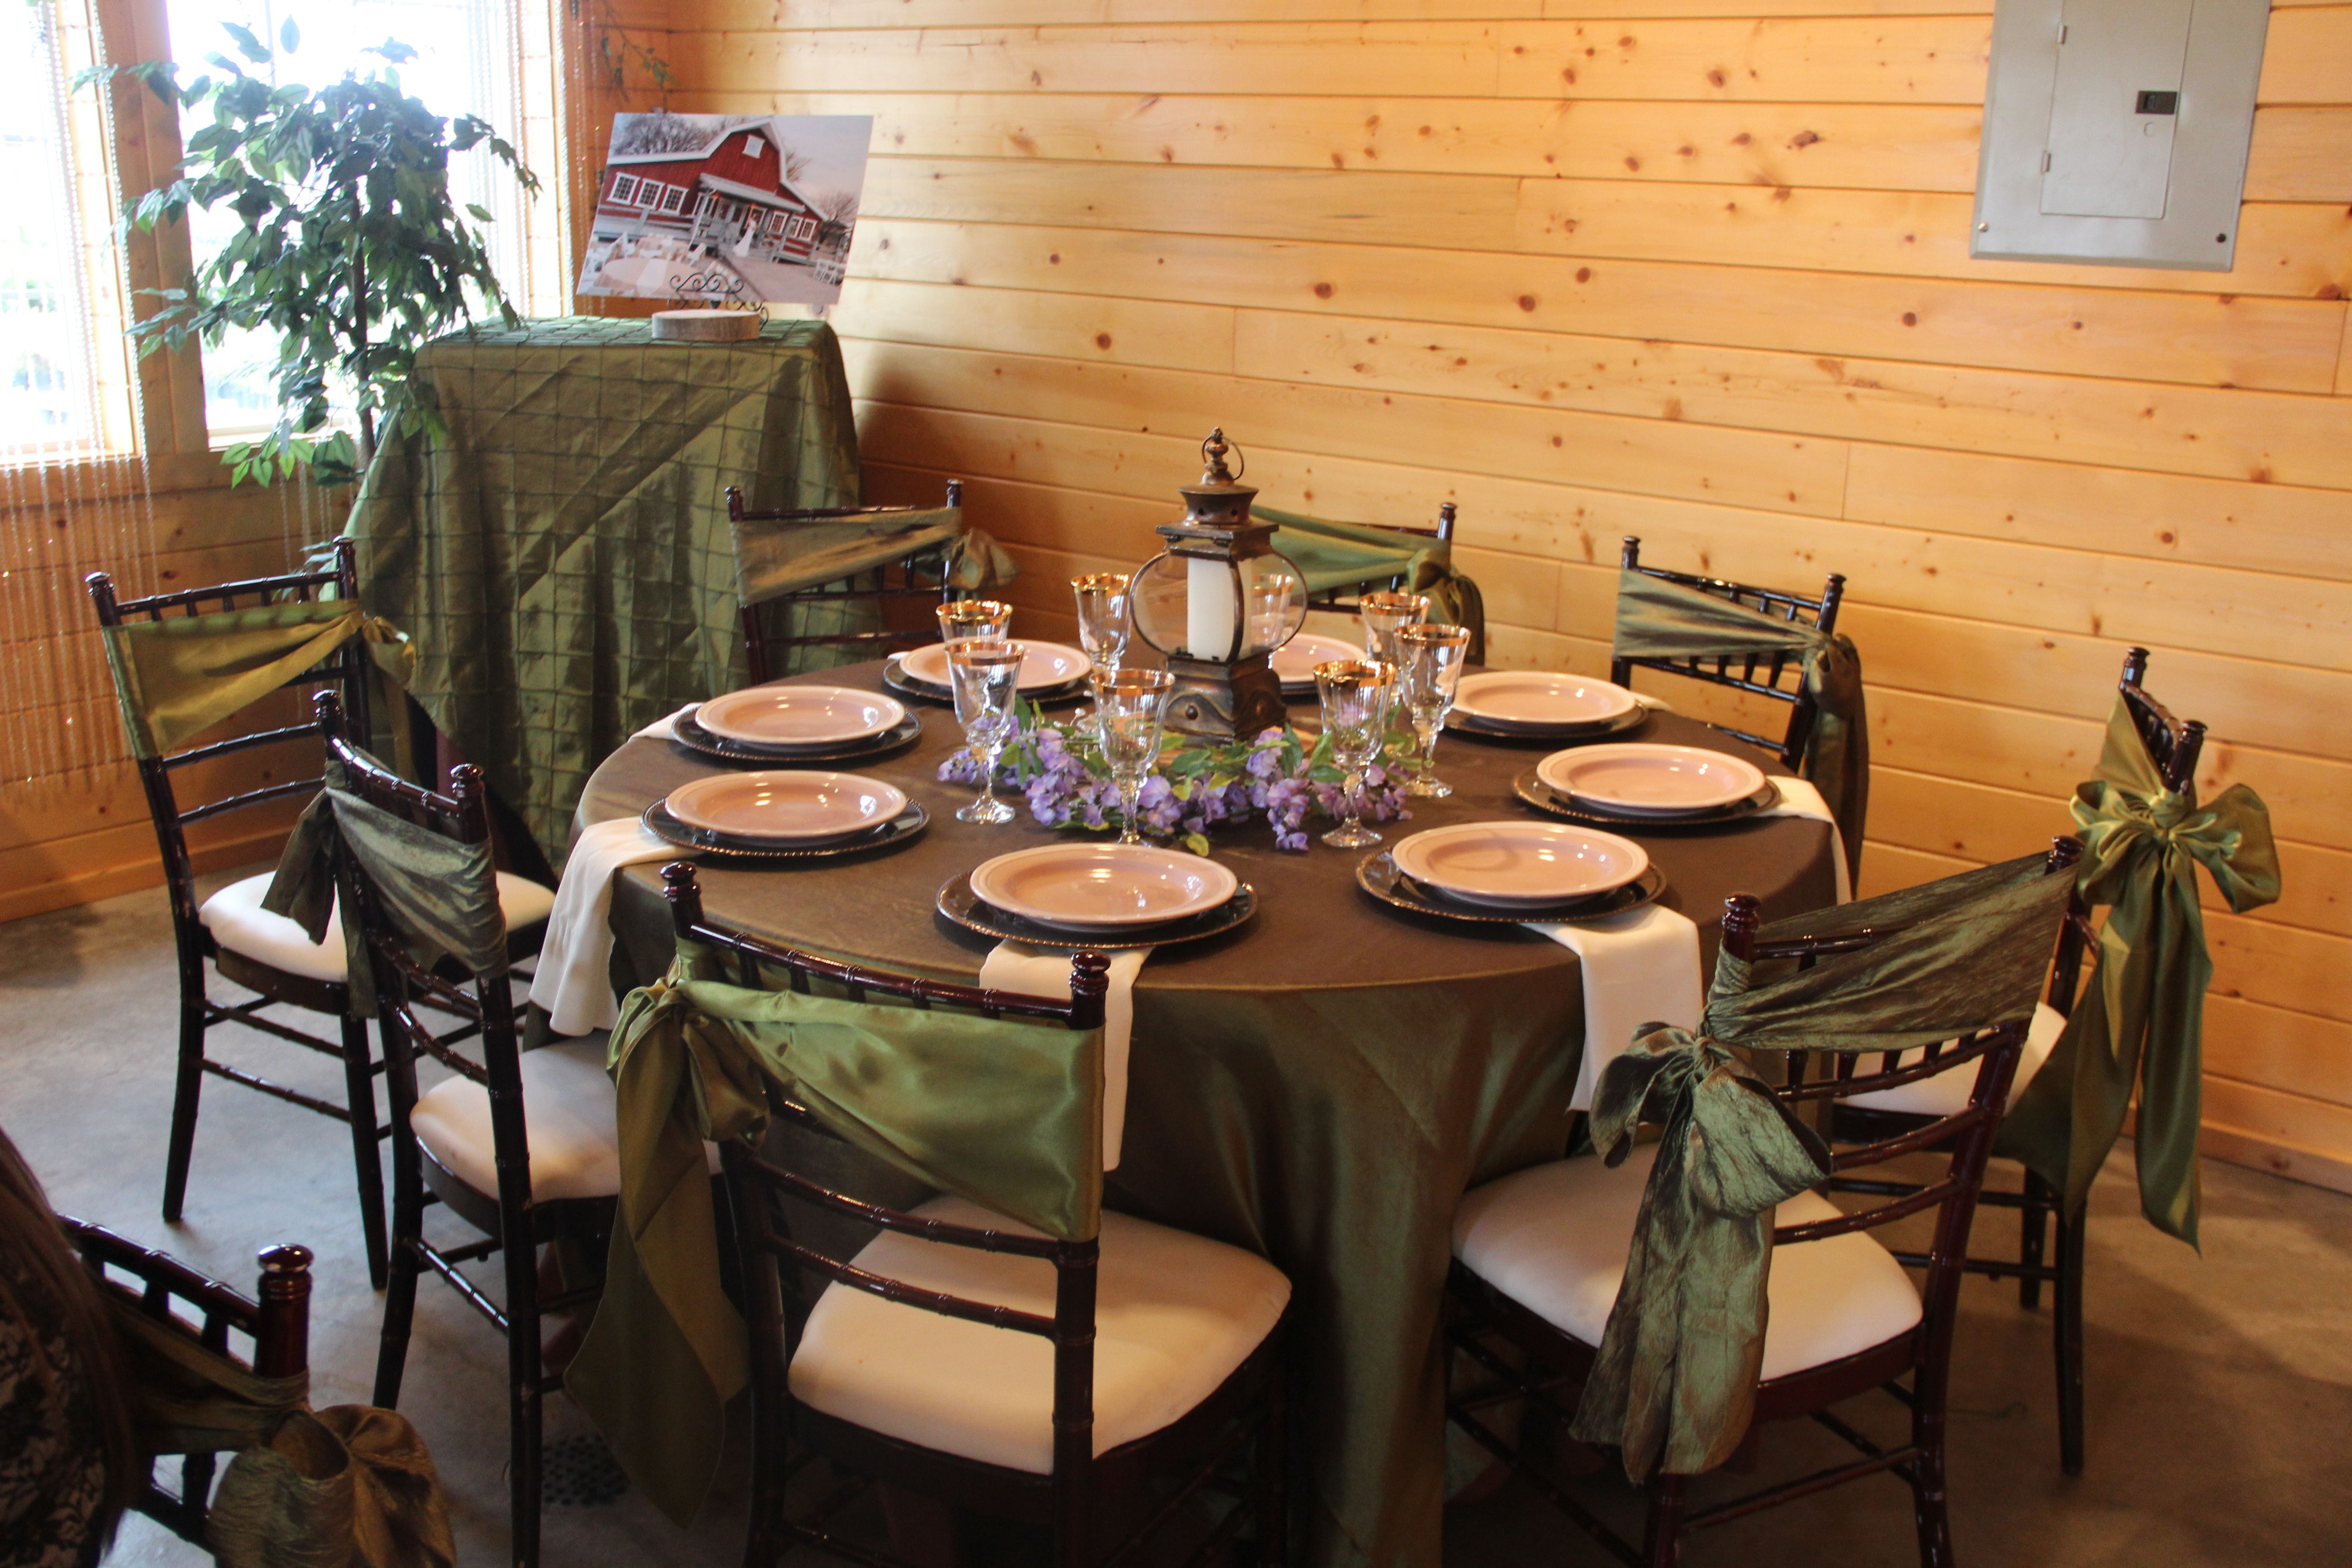 Warm Chocolate Tones With Willow Green Accentschiavari Chairs Inspiration Willow Dining Room Menu Inspiration Design